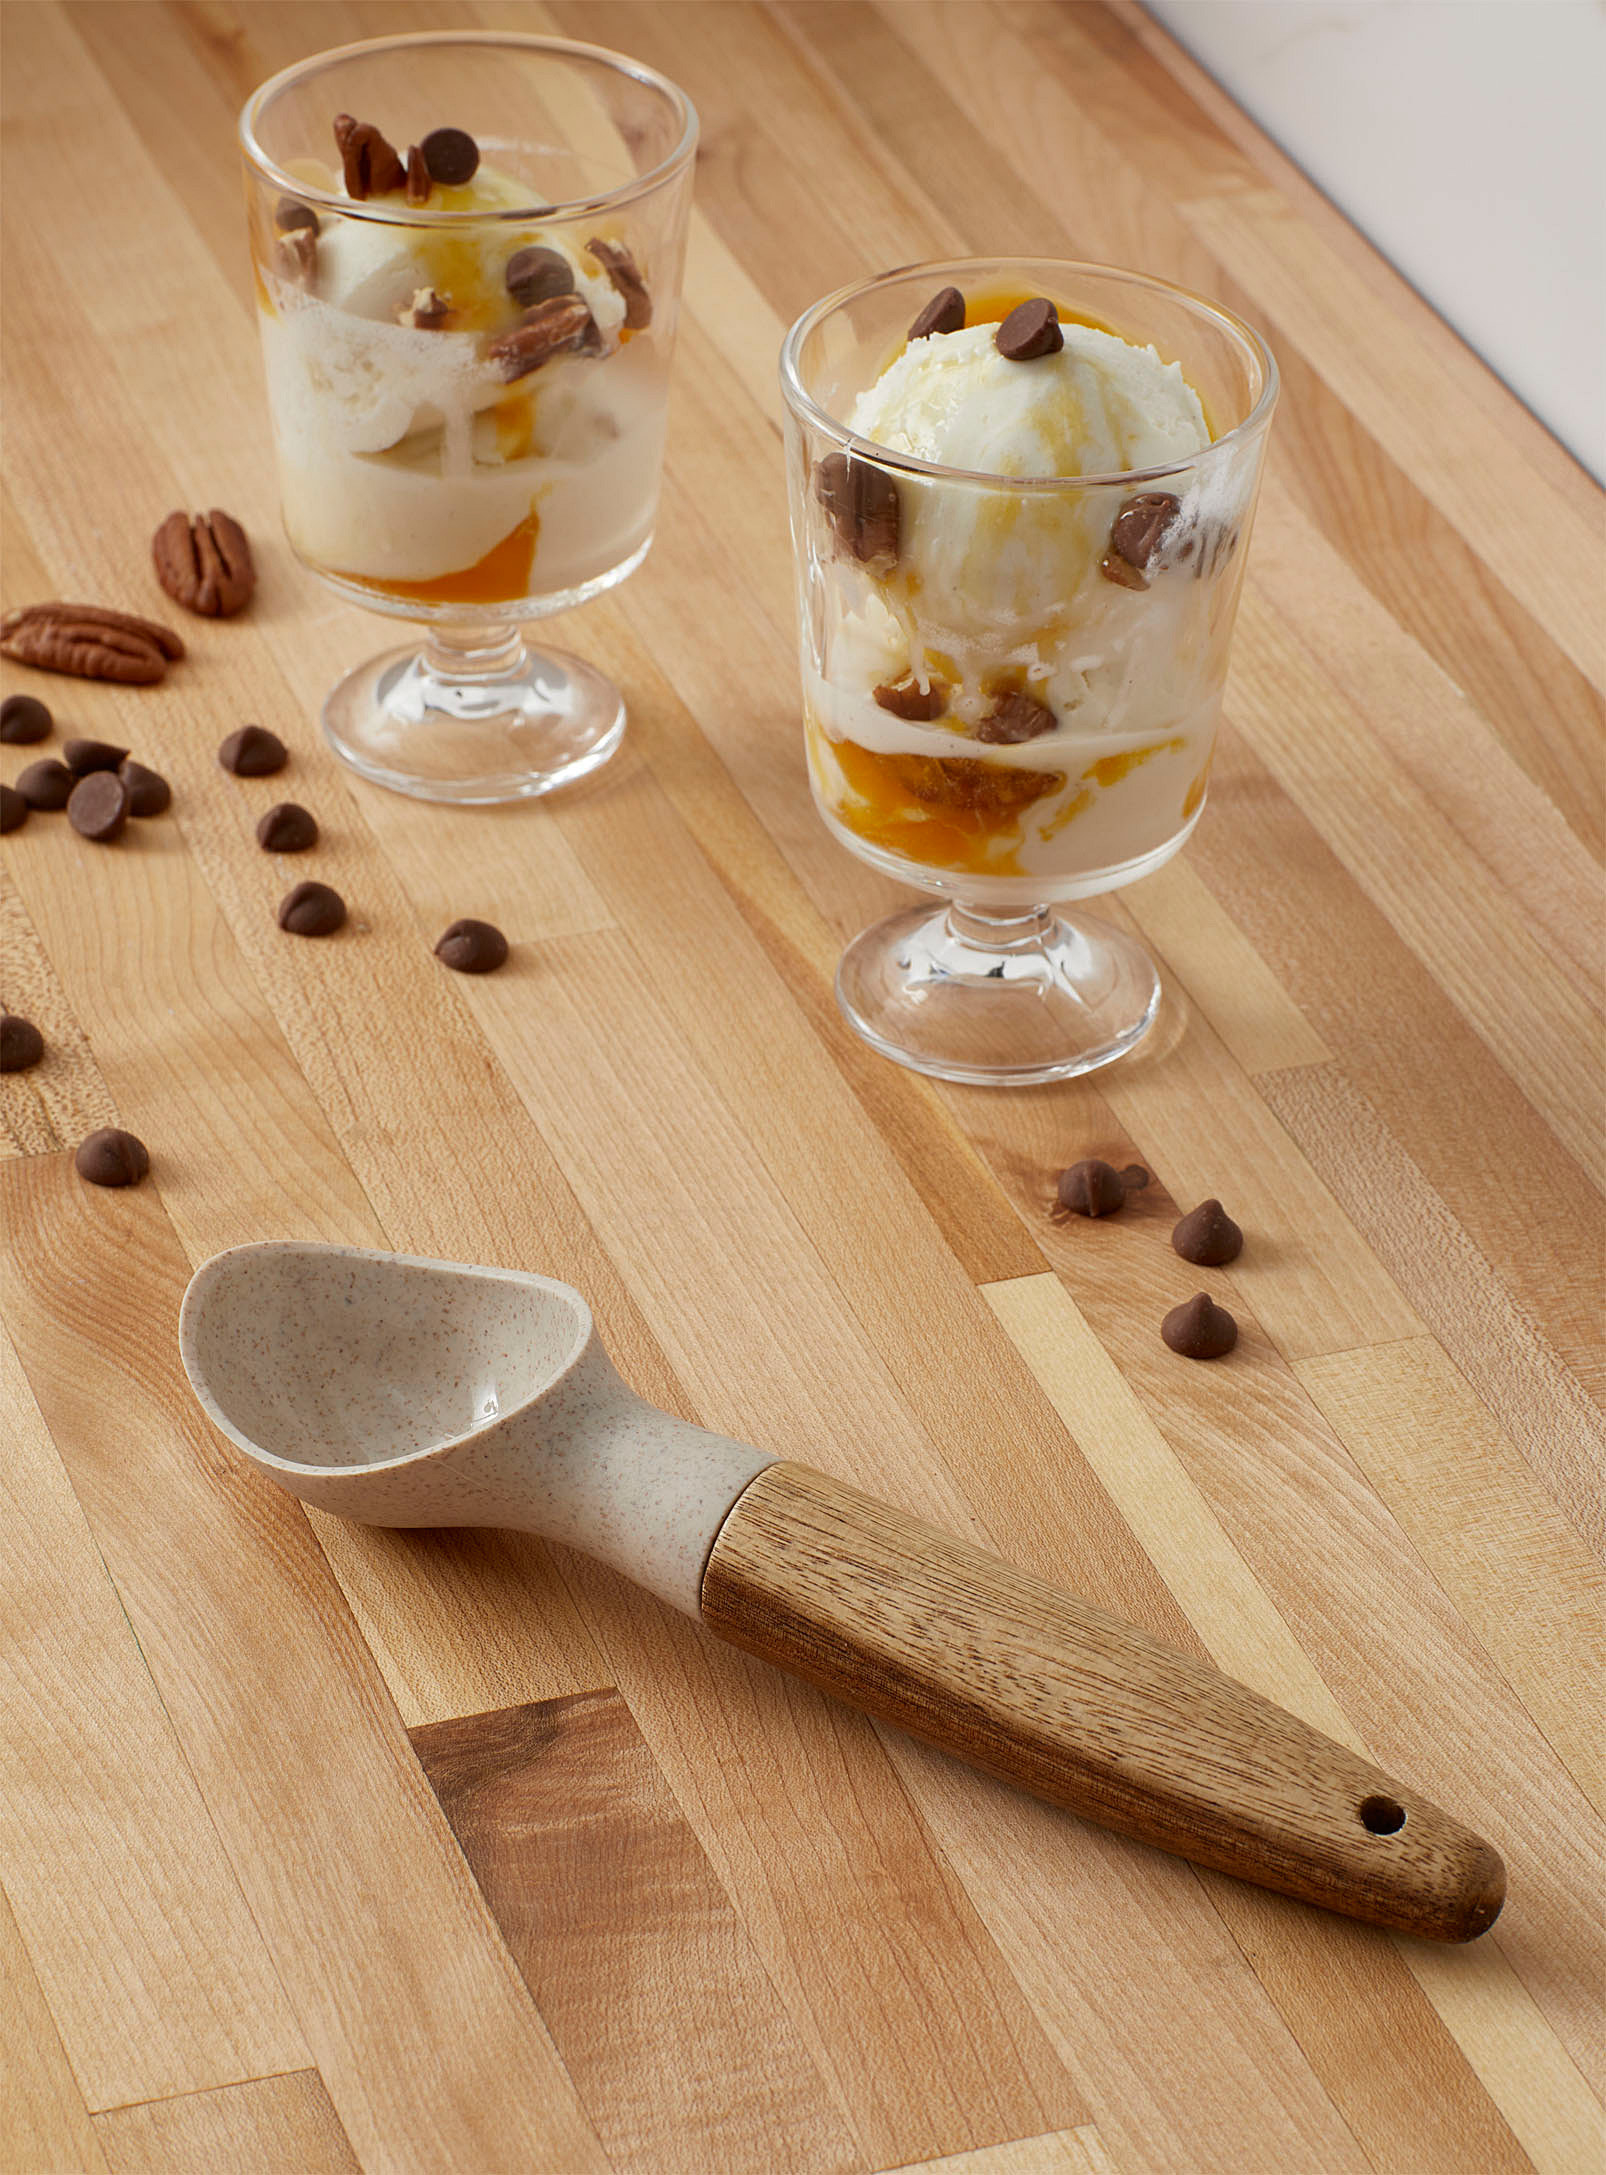 An ice creams scoop beside glass cups filled with ice cream